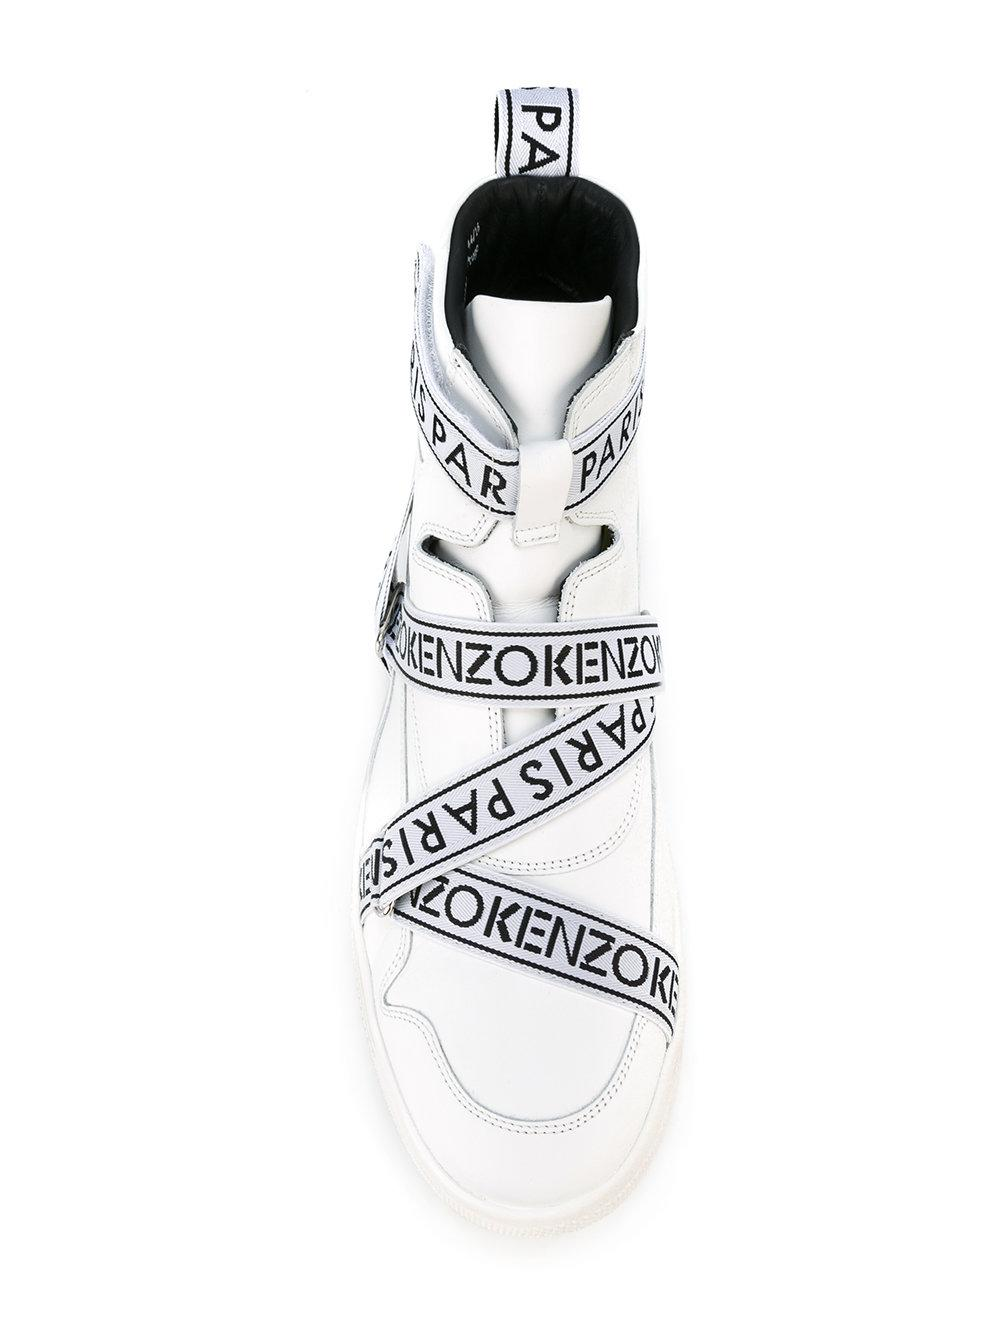 686f1a36 KENZO Coby Hi-top Sneakers in White for Men - Lyst